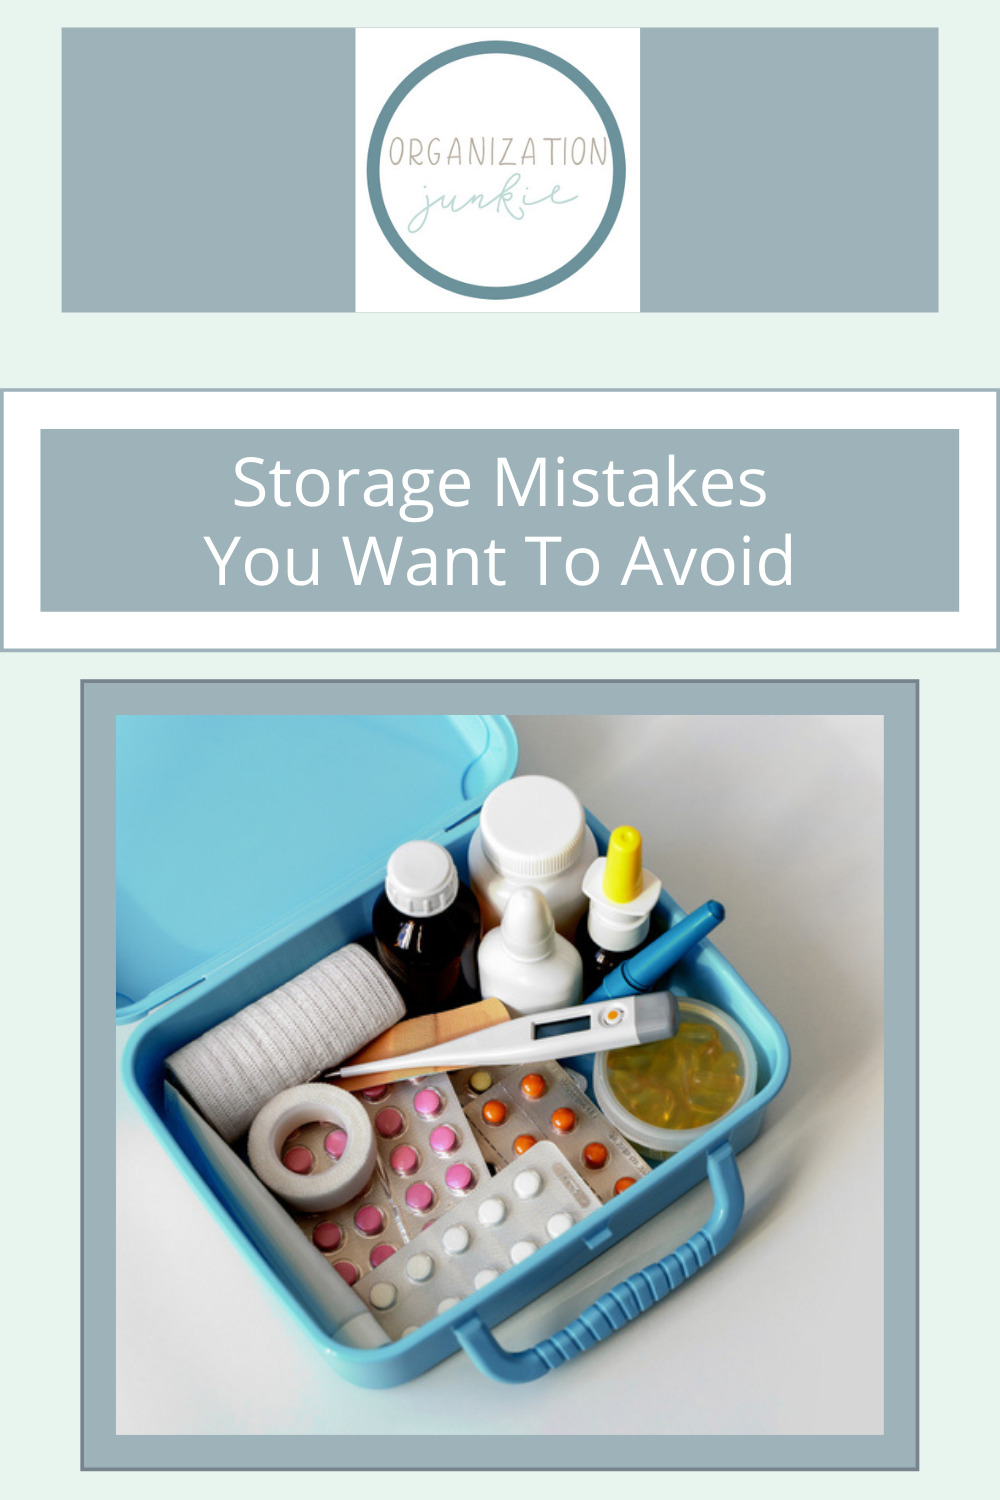 Storage Mistakes That Could Ruin Your Belongings